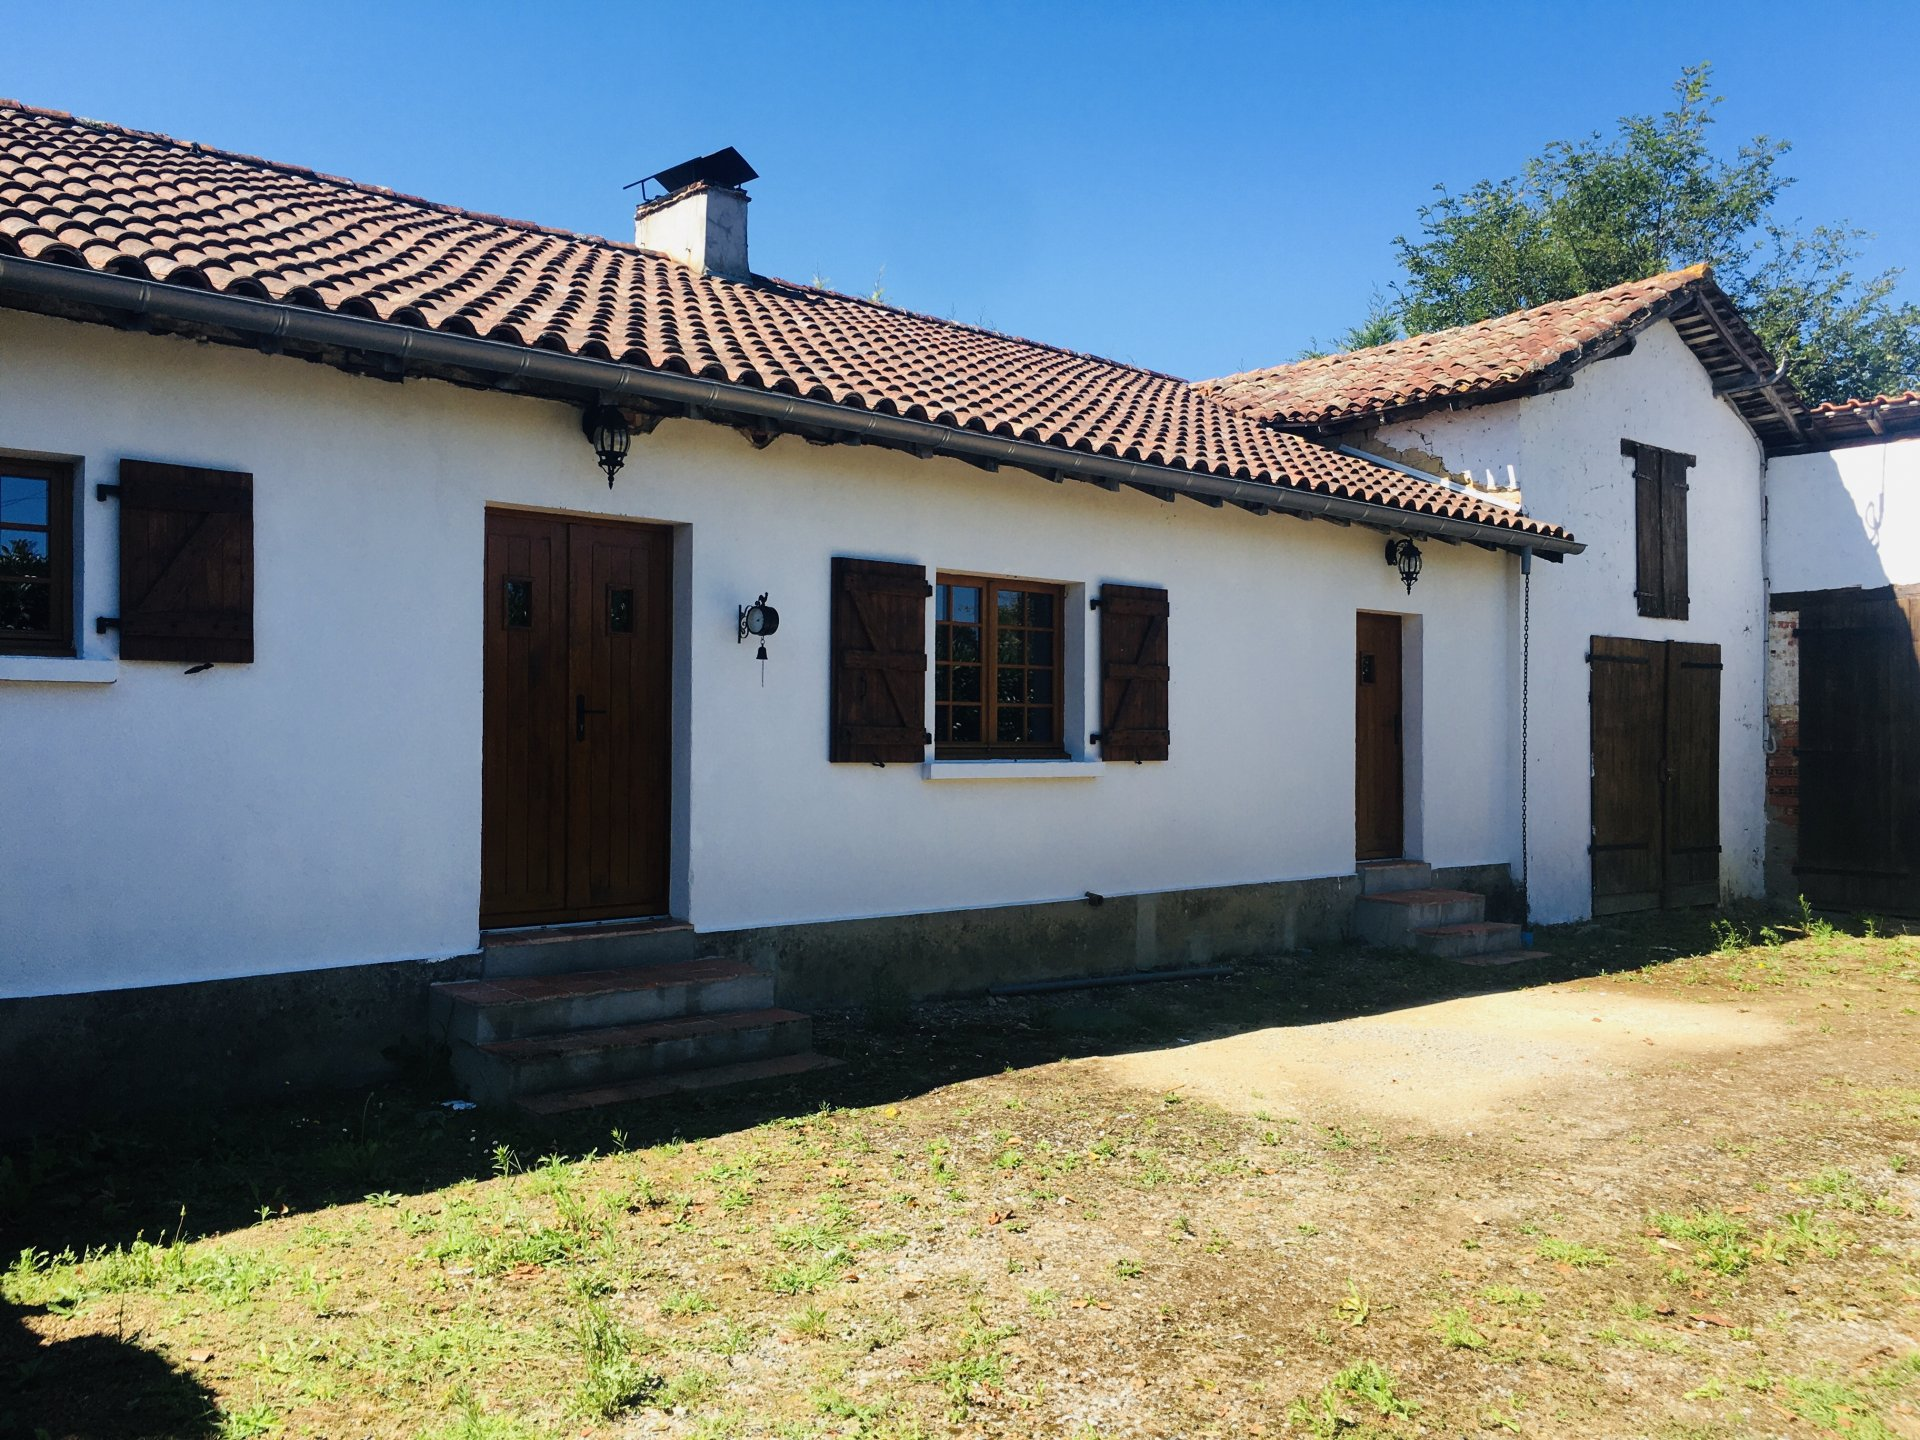 18th century country house in the Chalosse